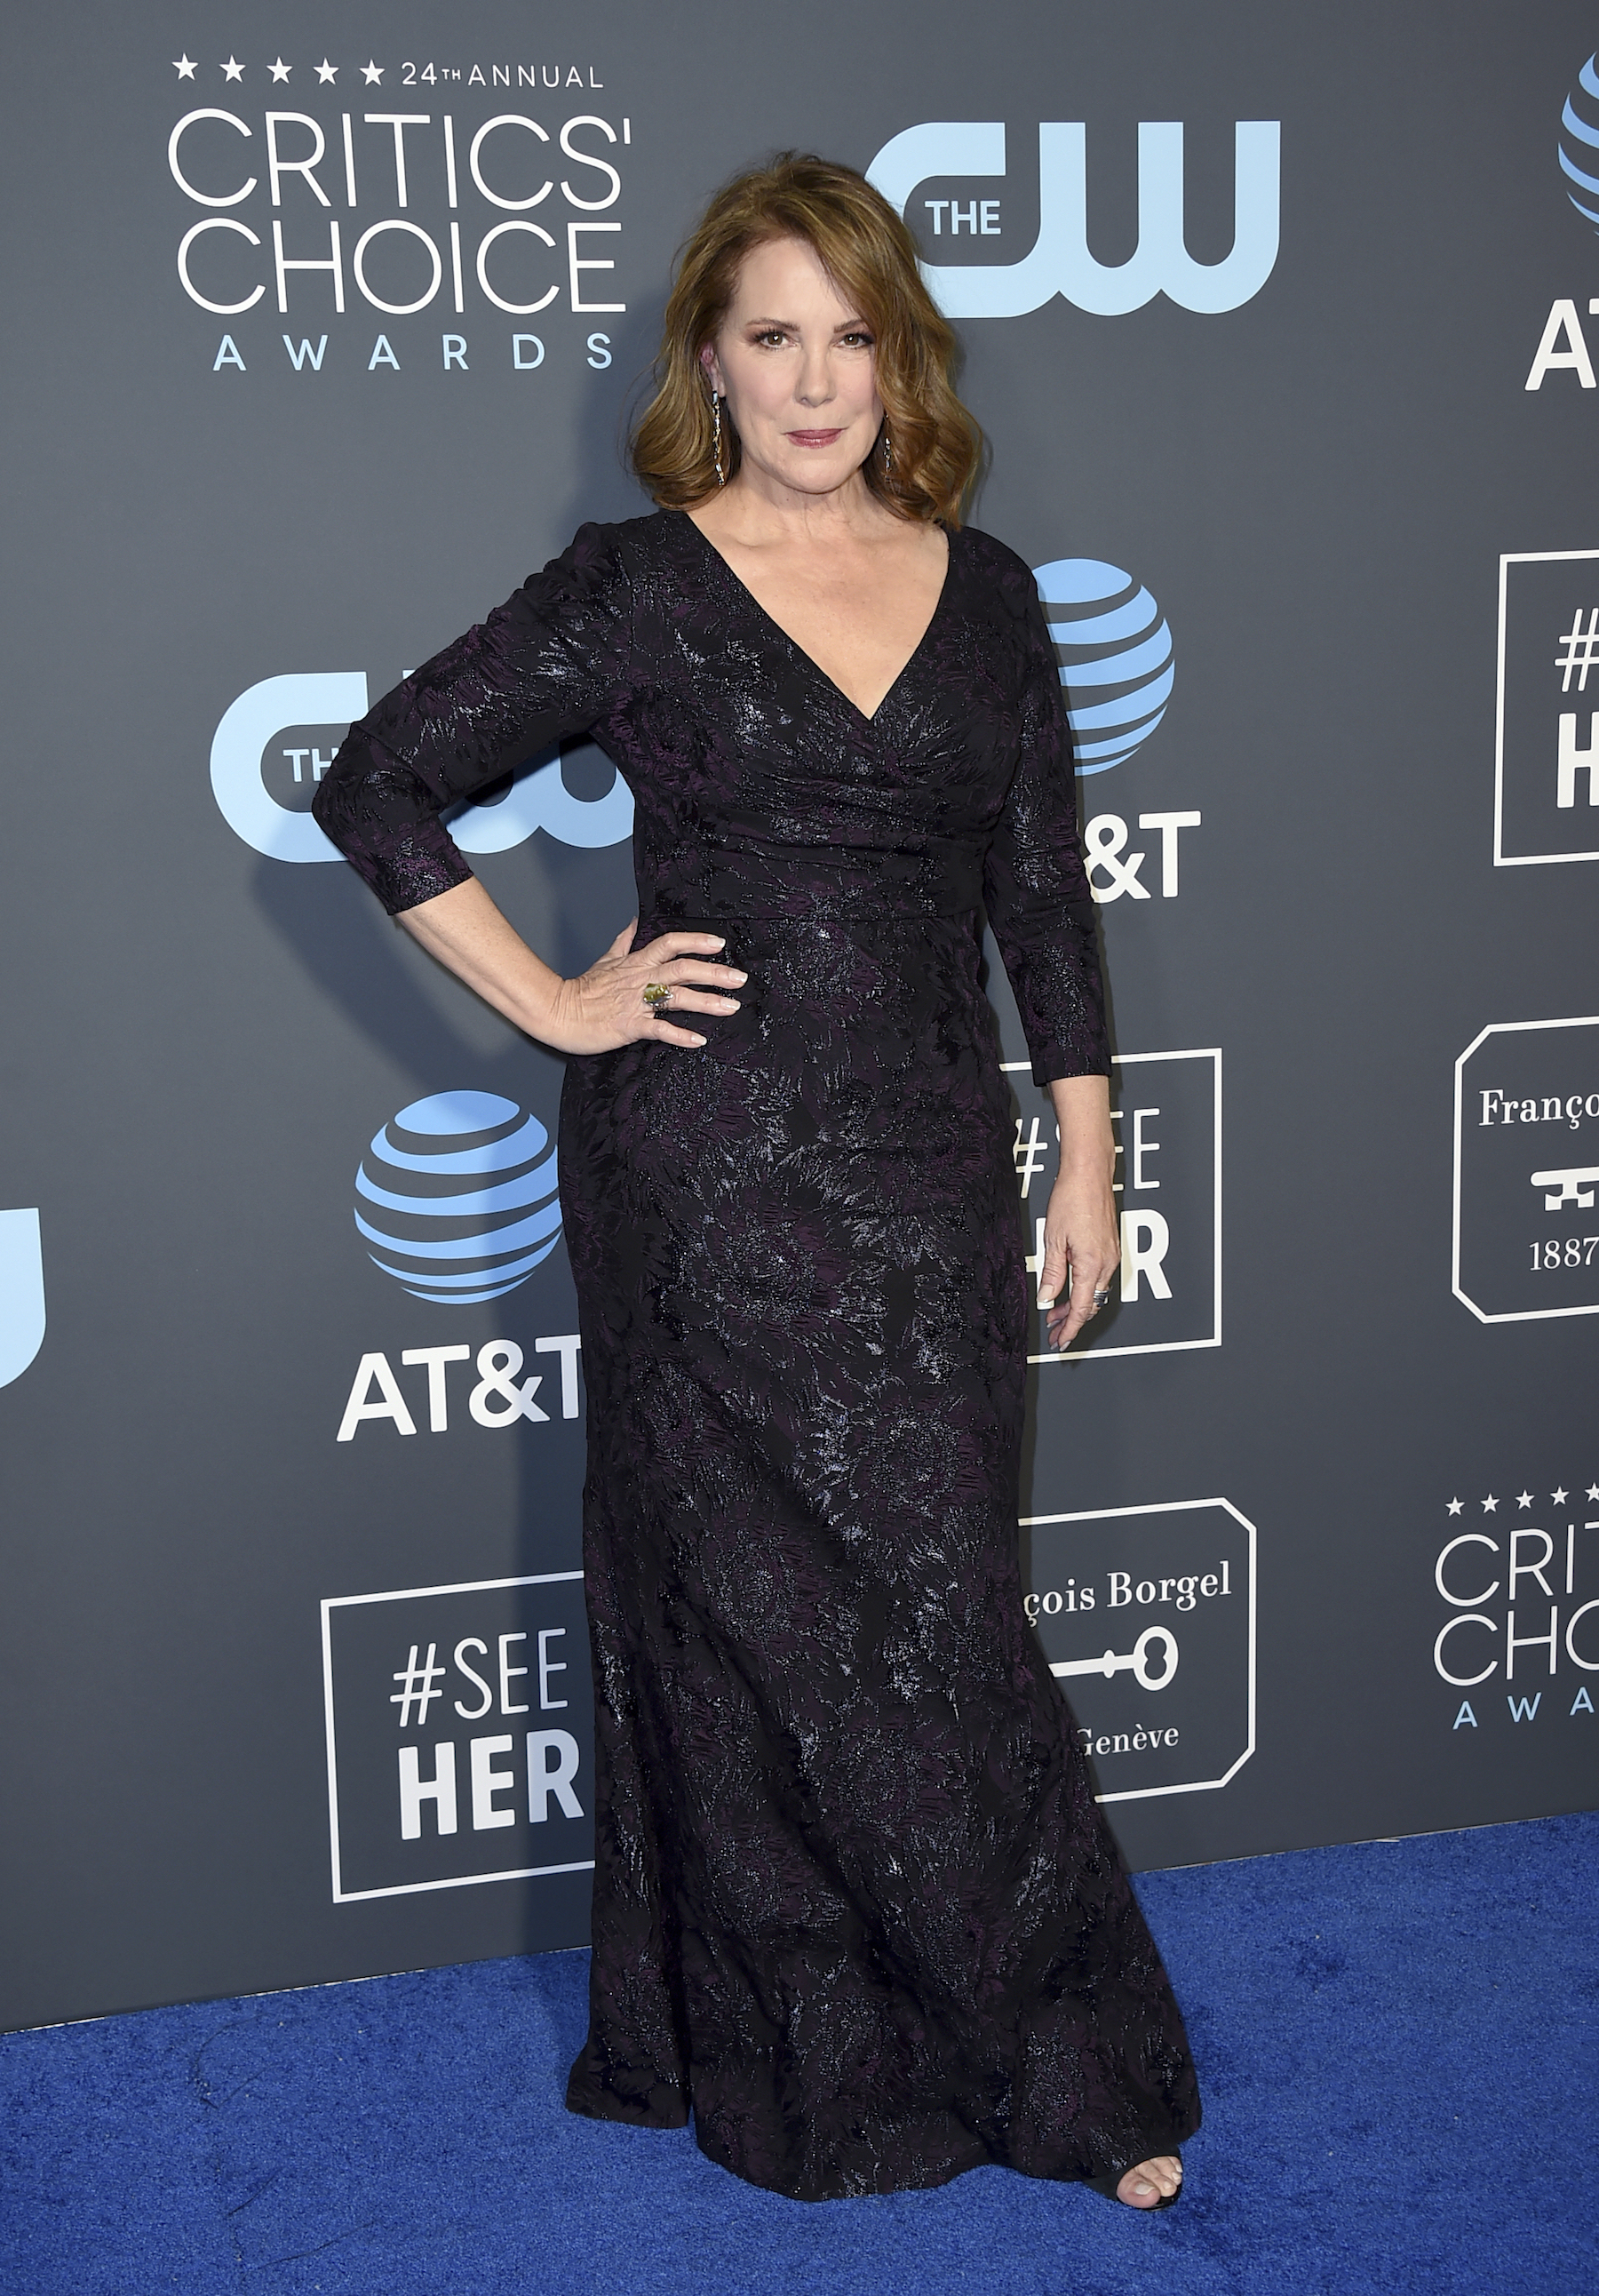 <div class='meta'><div class='origin-logo' data-origin='AP'></div><span class='caption-text' data-credit='Jordan Strauss/Invision/AP'>Elizabeth Perkins arrives at the 24th annual Critics' Choice Awards on Sunday, Jan. 13, 2019, at the Barker Hangar in Santa Monica, Calif.</span></div>